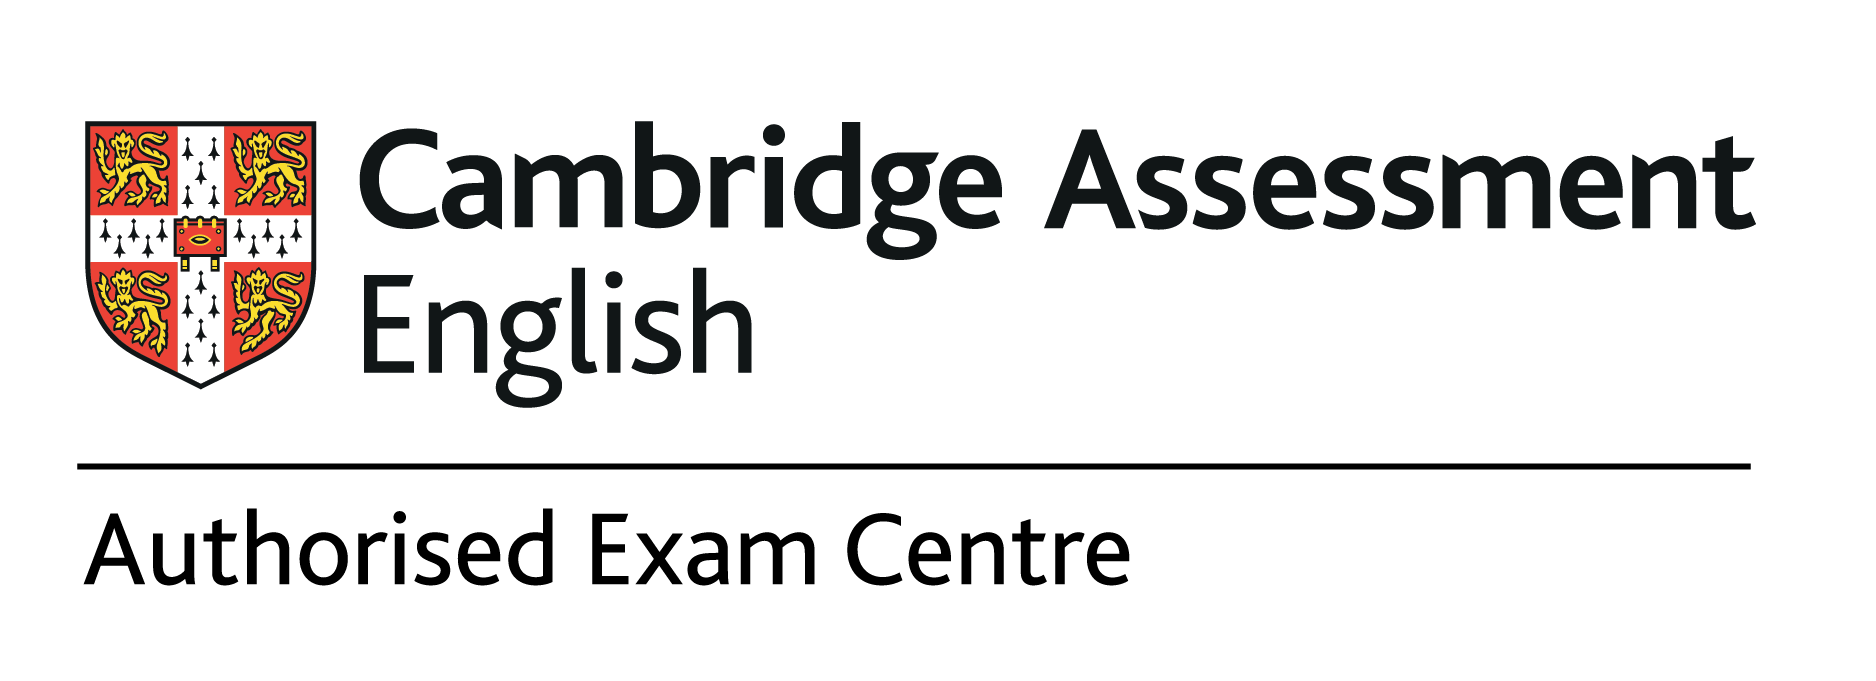 Authorised exam centre logo CMYK